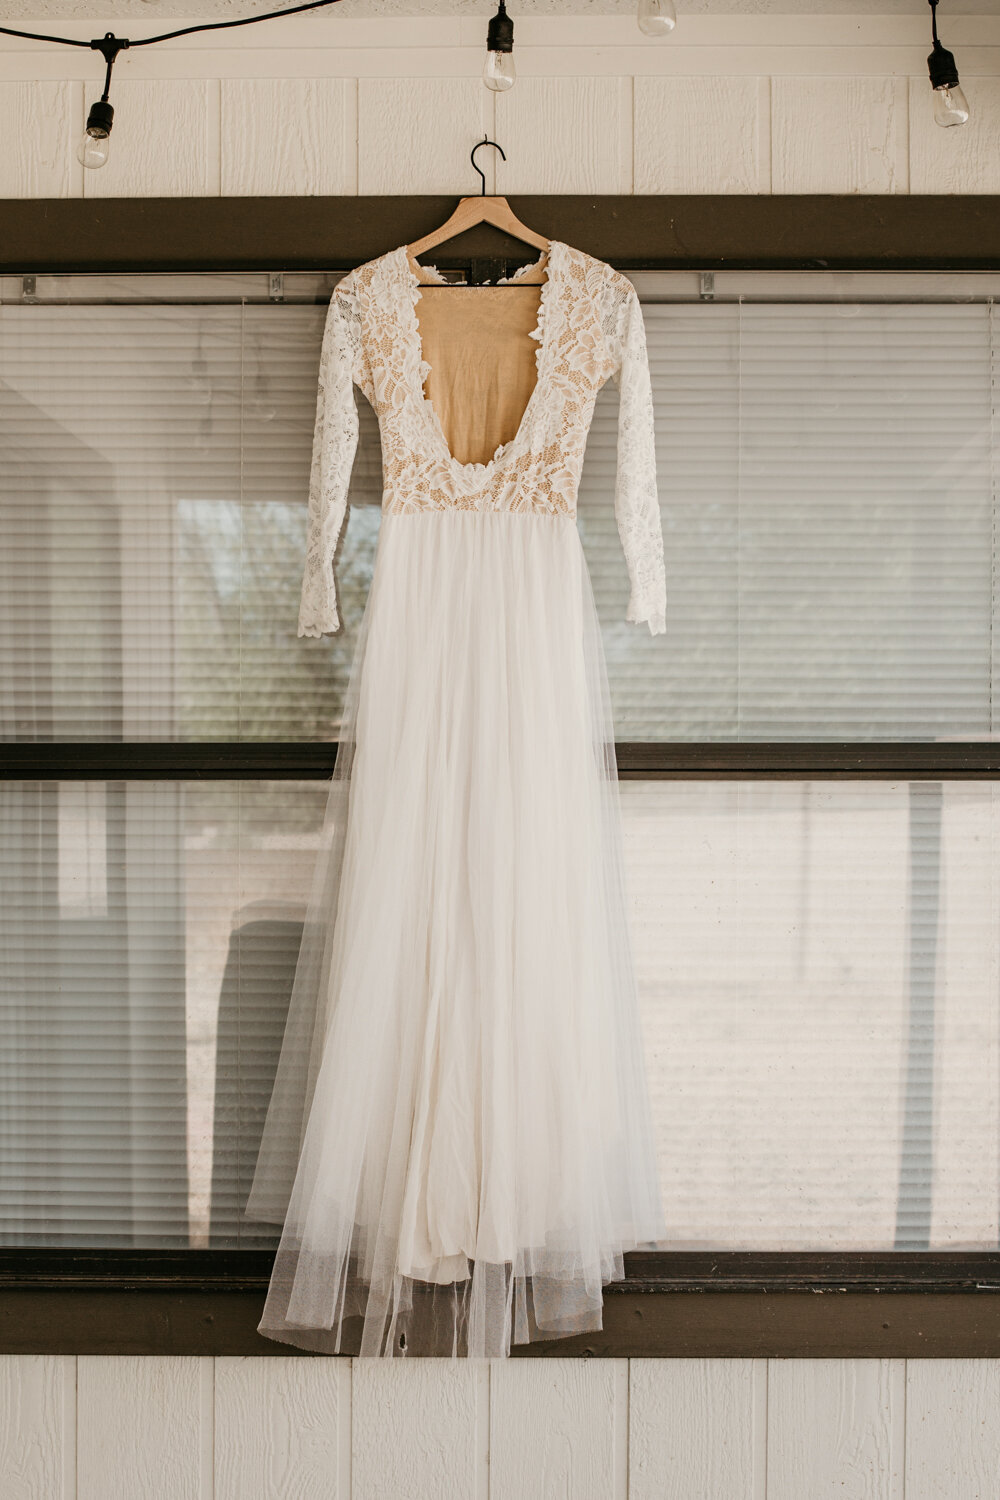 wedding-dress-rentals-for-styled-shoots-elopement-photographer-9